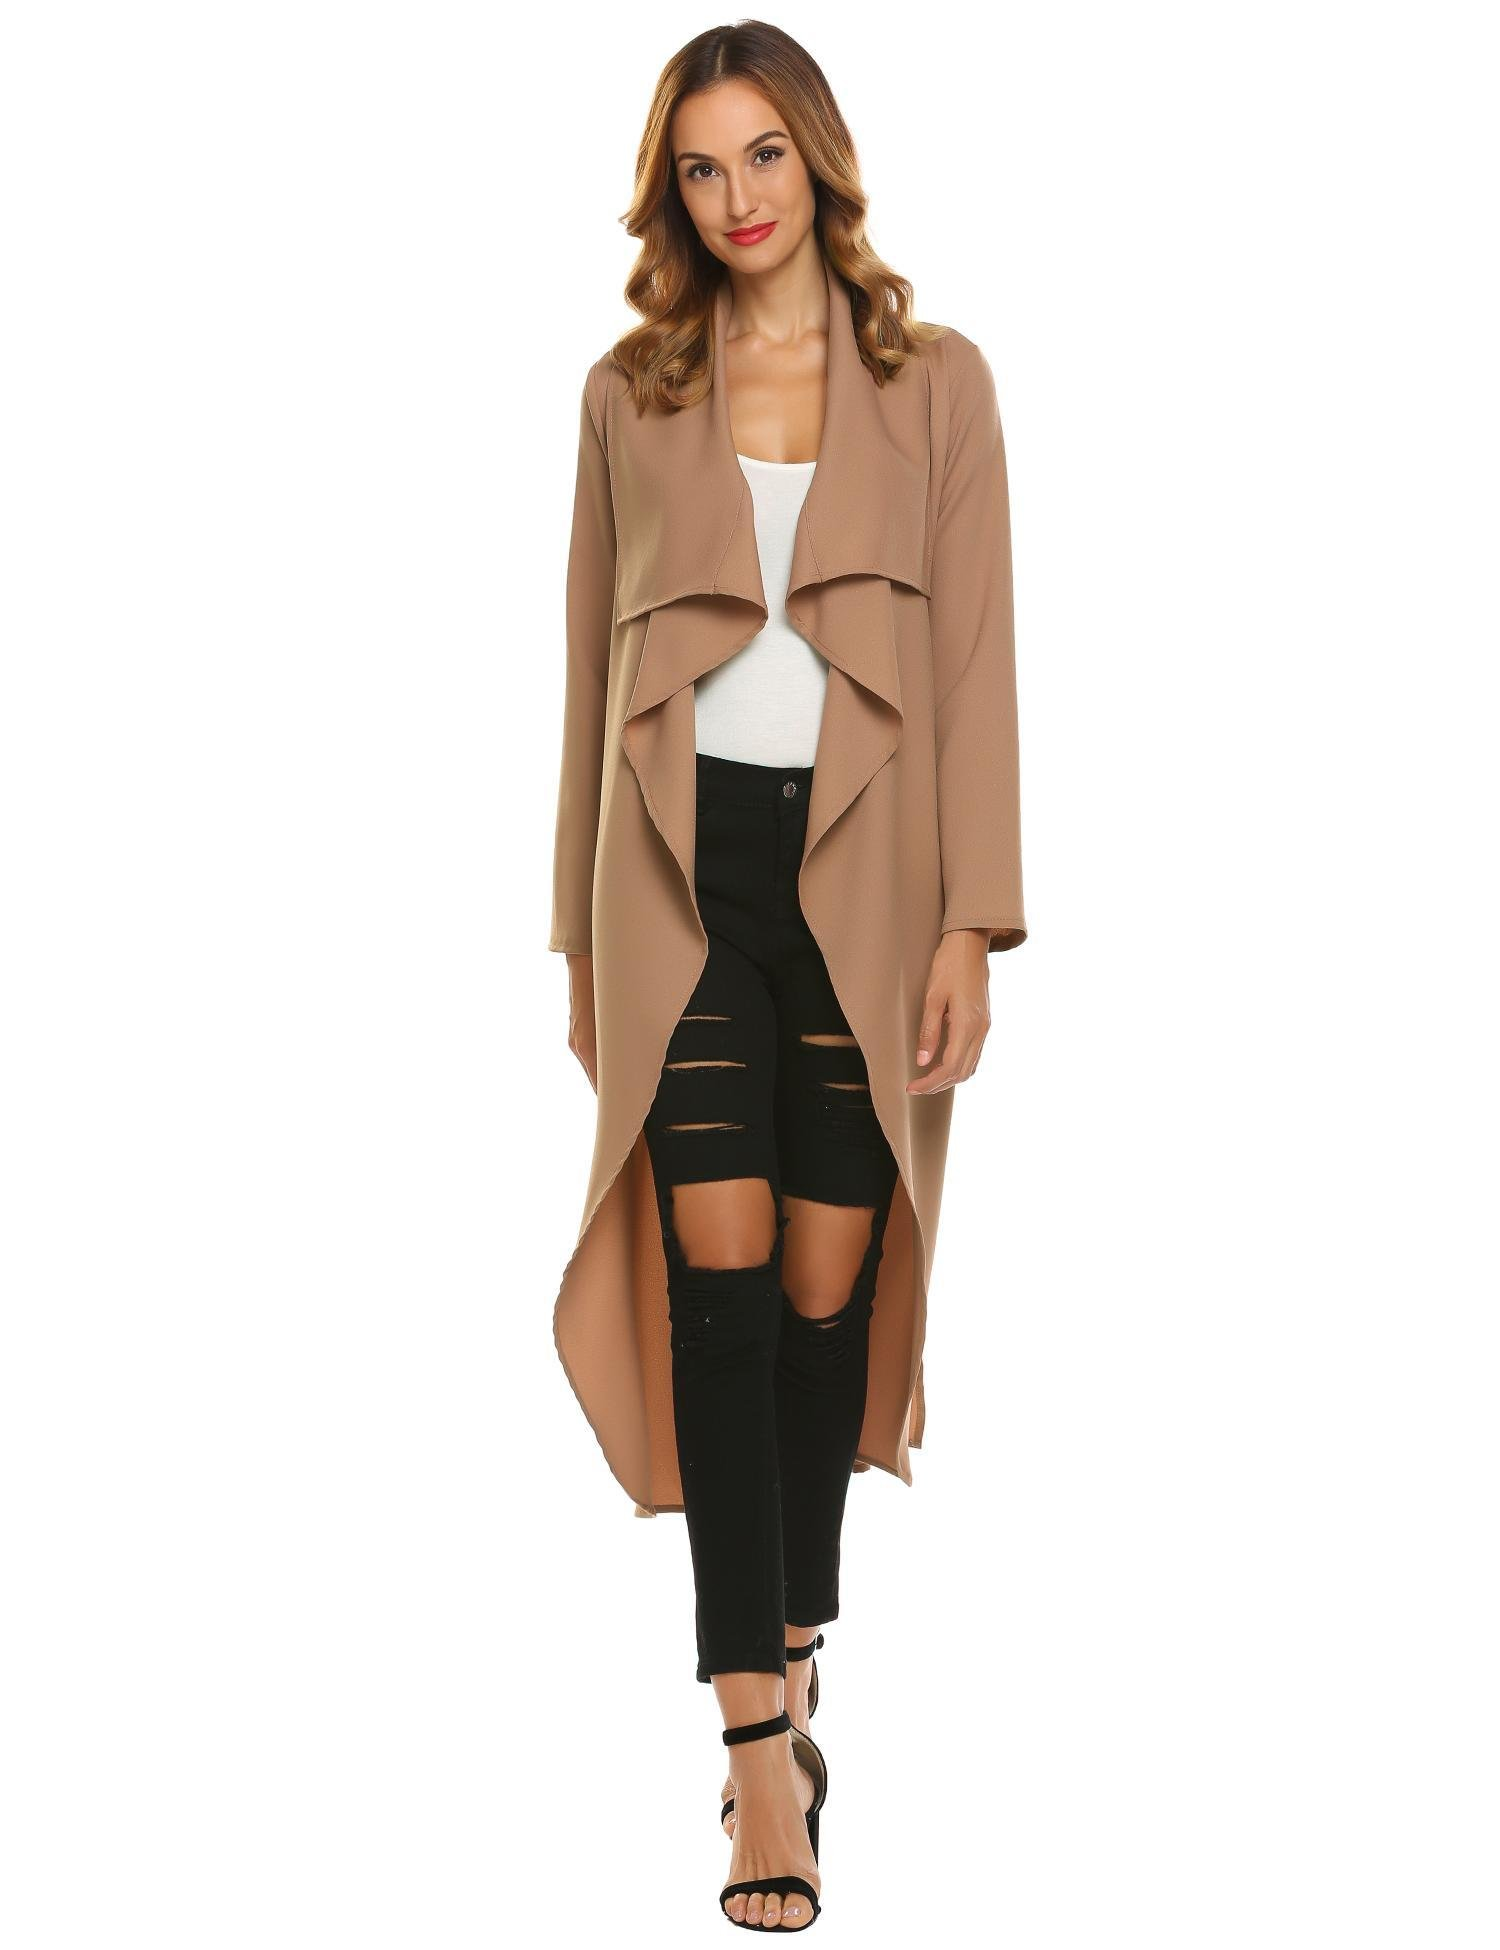 Beyove Women's British Style Lapel Collar Long Sleeve Pockets Trench Coat Long Lightweight Cardigan With Belt Pink XL